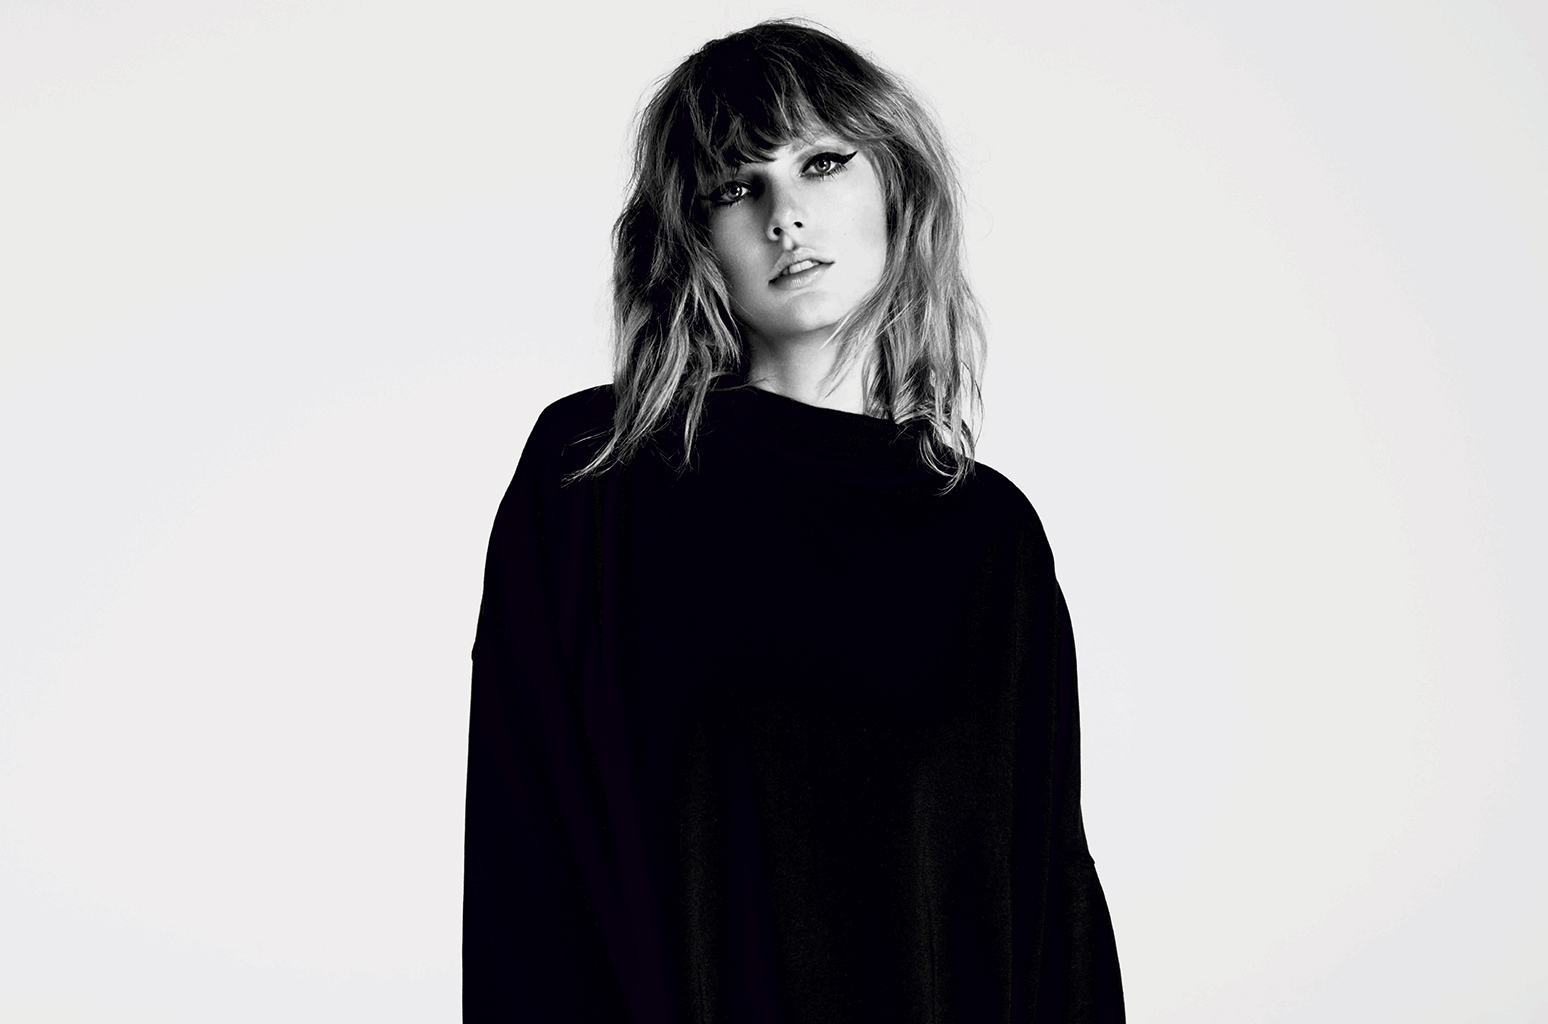 Artists' Library  Taylor-swift-press-photo-acb2c4fc-c884-4ec2-b889-6ea529cbcff4